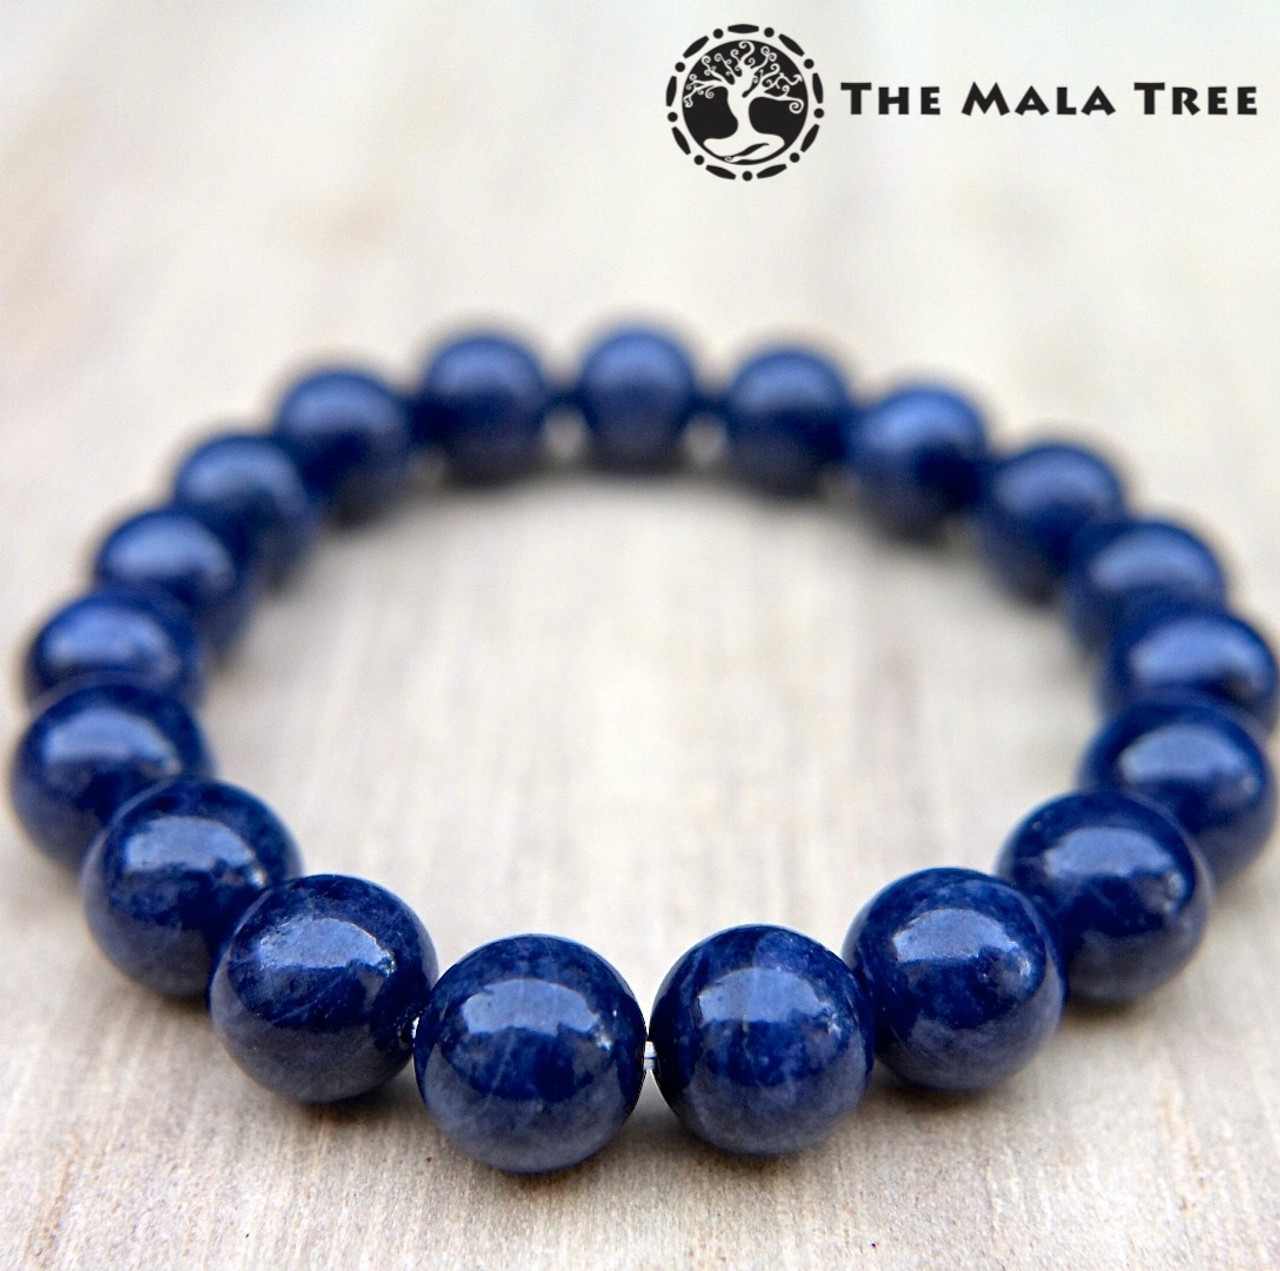 liliandesigns sapphire jewellery original nash bracelet by lilia product birthstone september